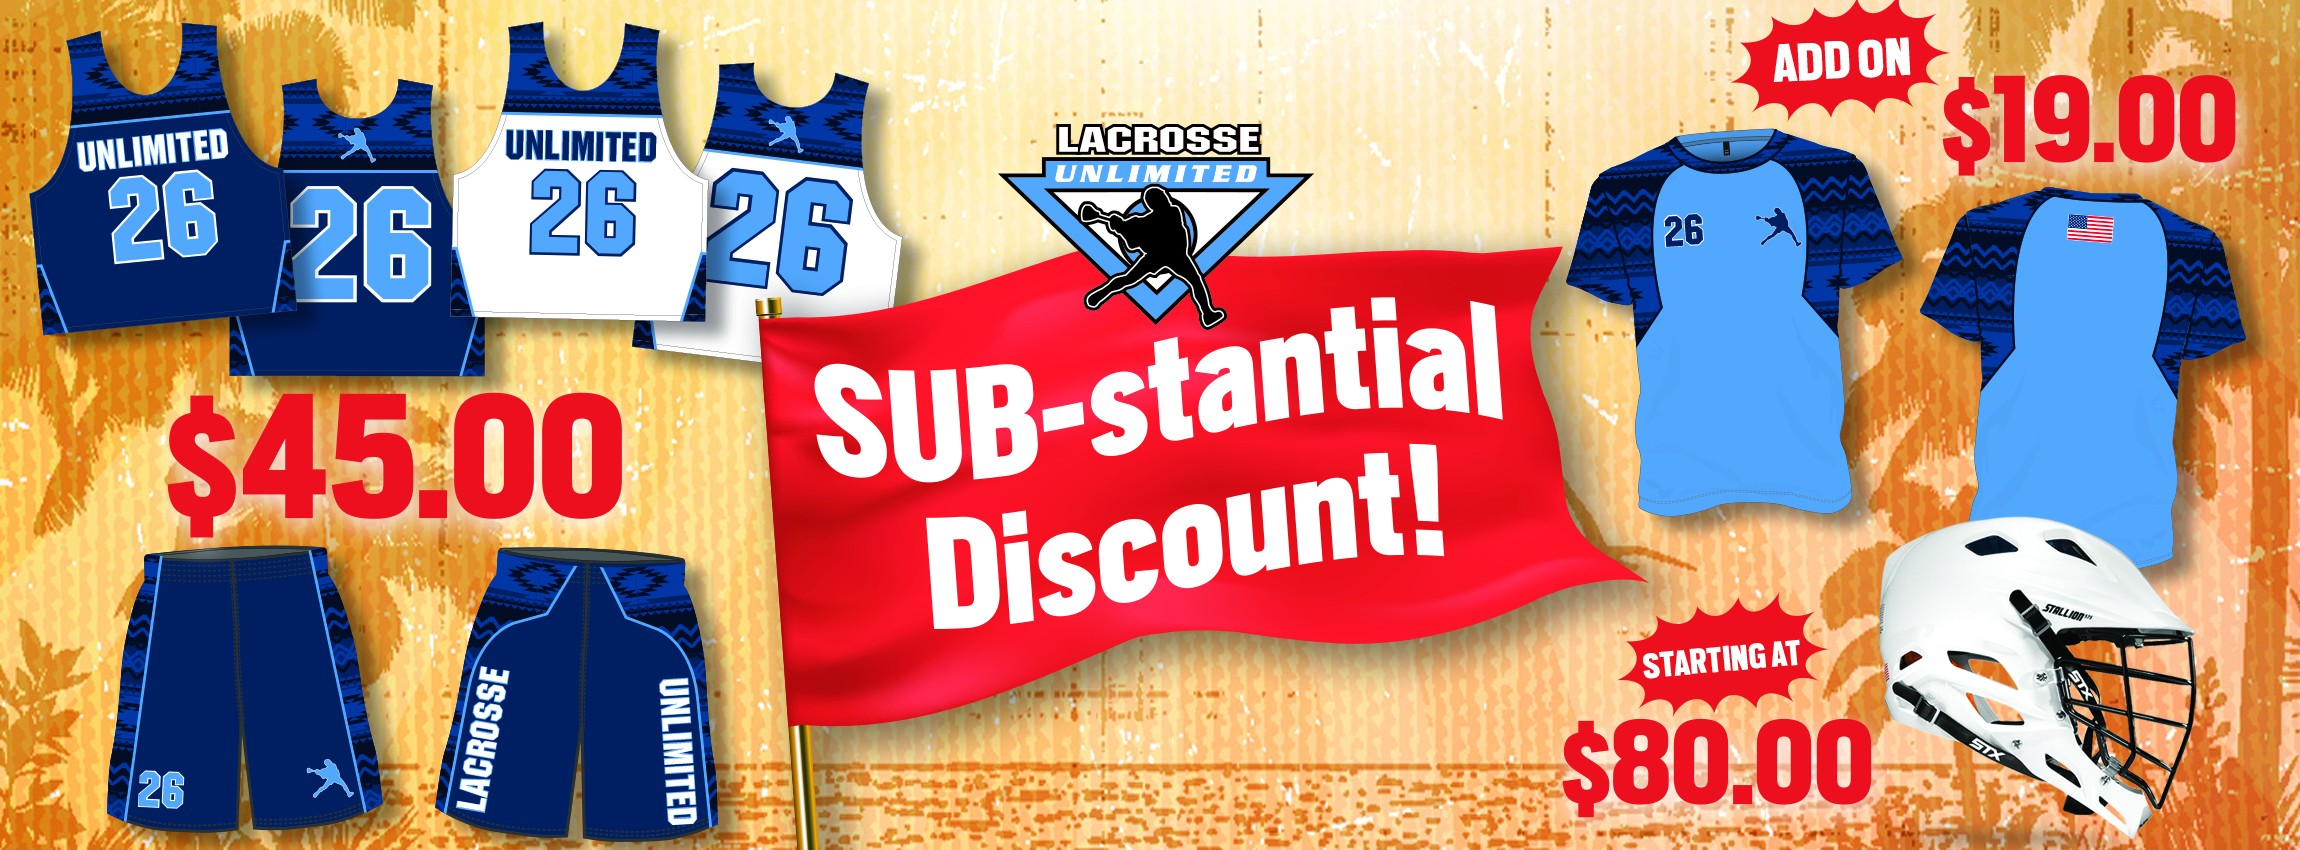 Lacrosse Sublimated Reversible and Shorts Summer Deal